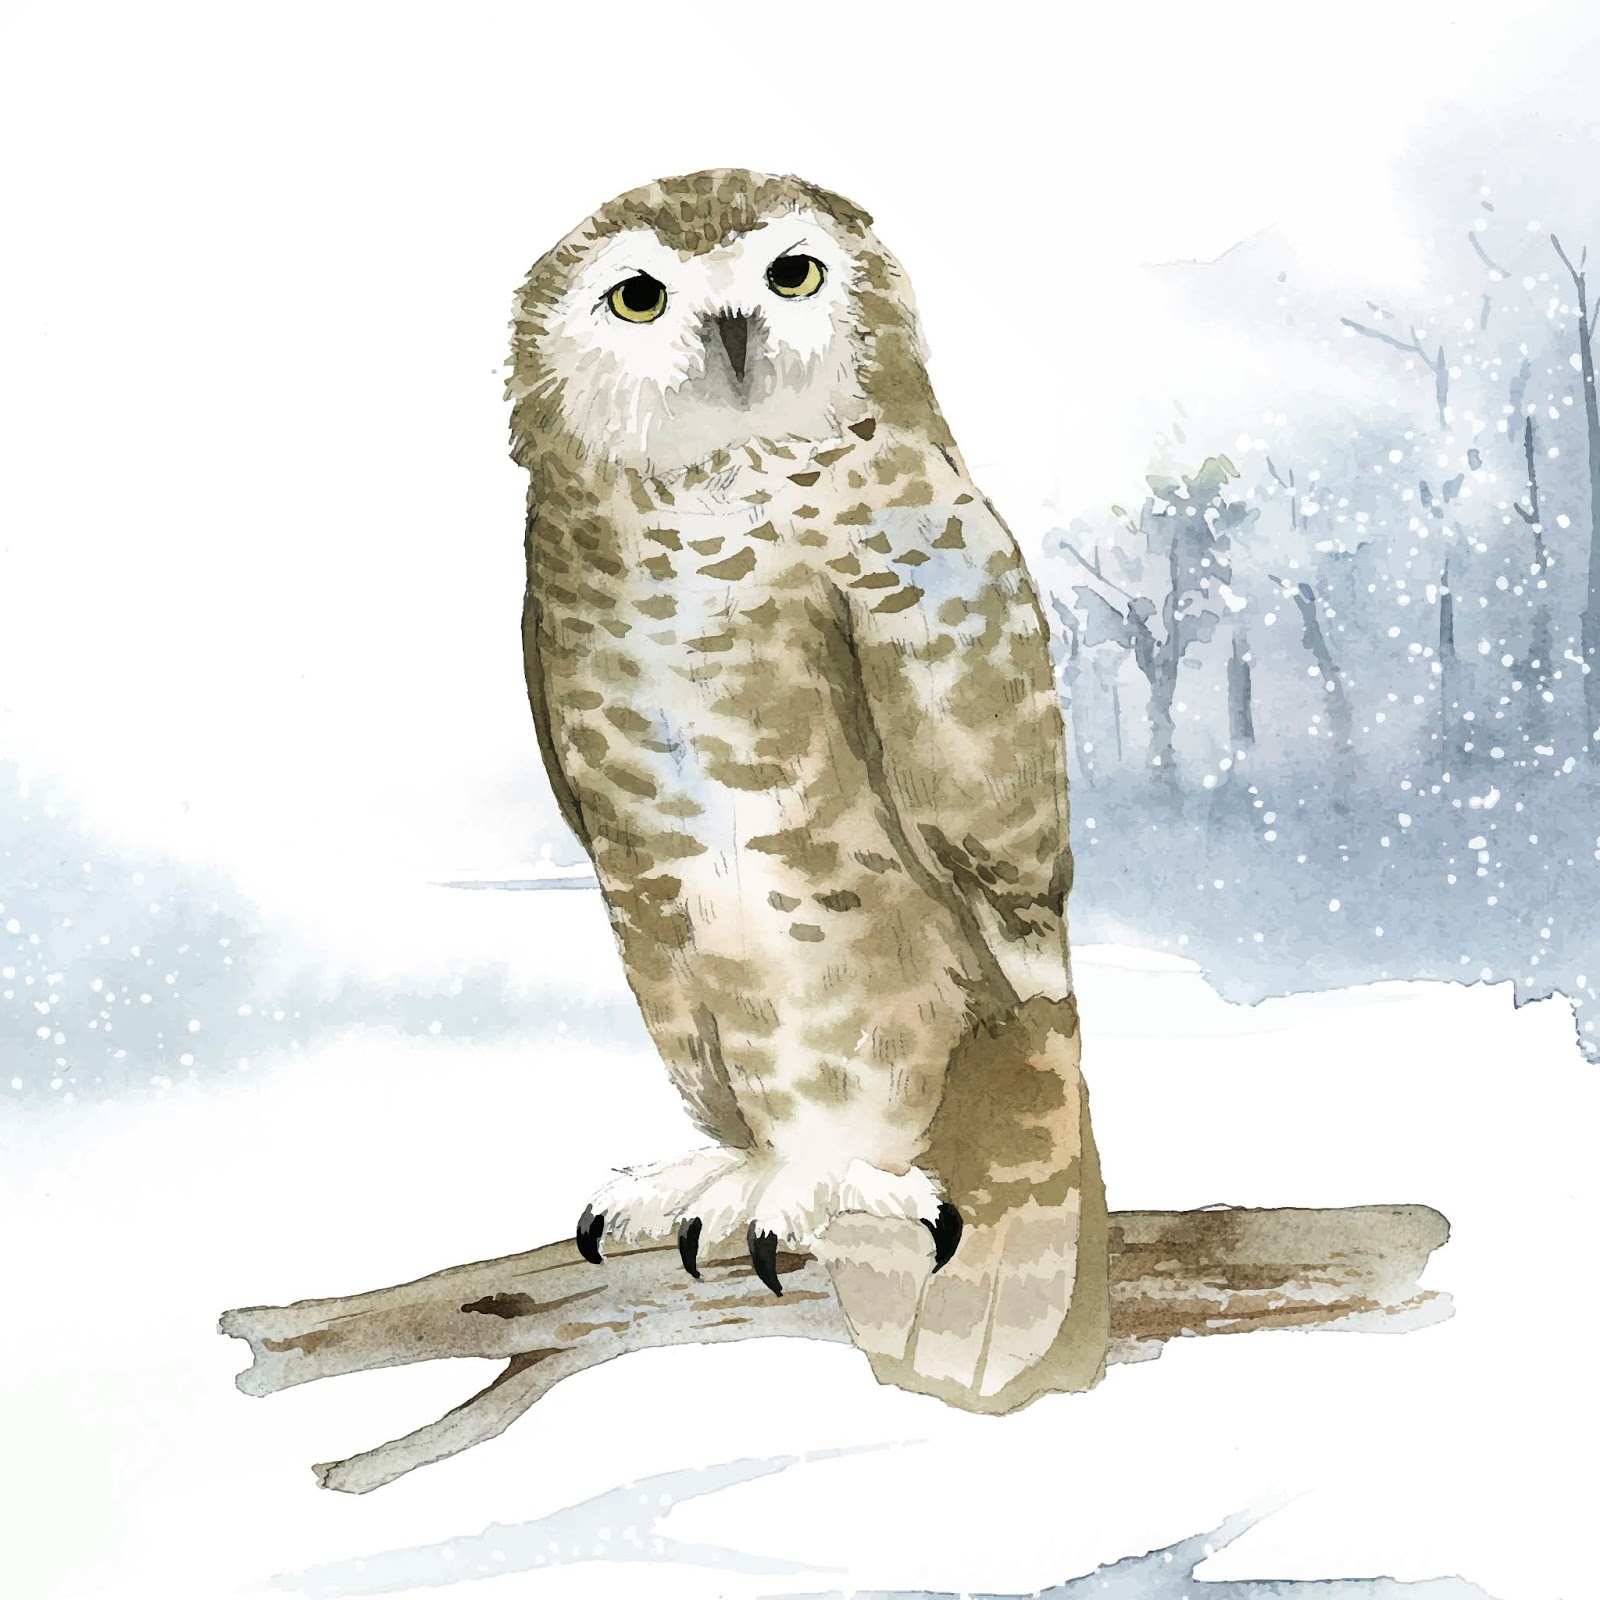 Snowy Owl Winter Watercolor Style Vector Free Download Vector CDR, AI, EPS and PNG Formats